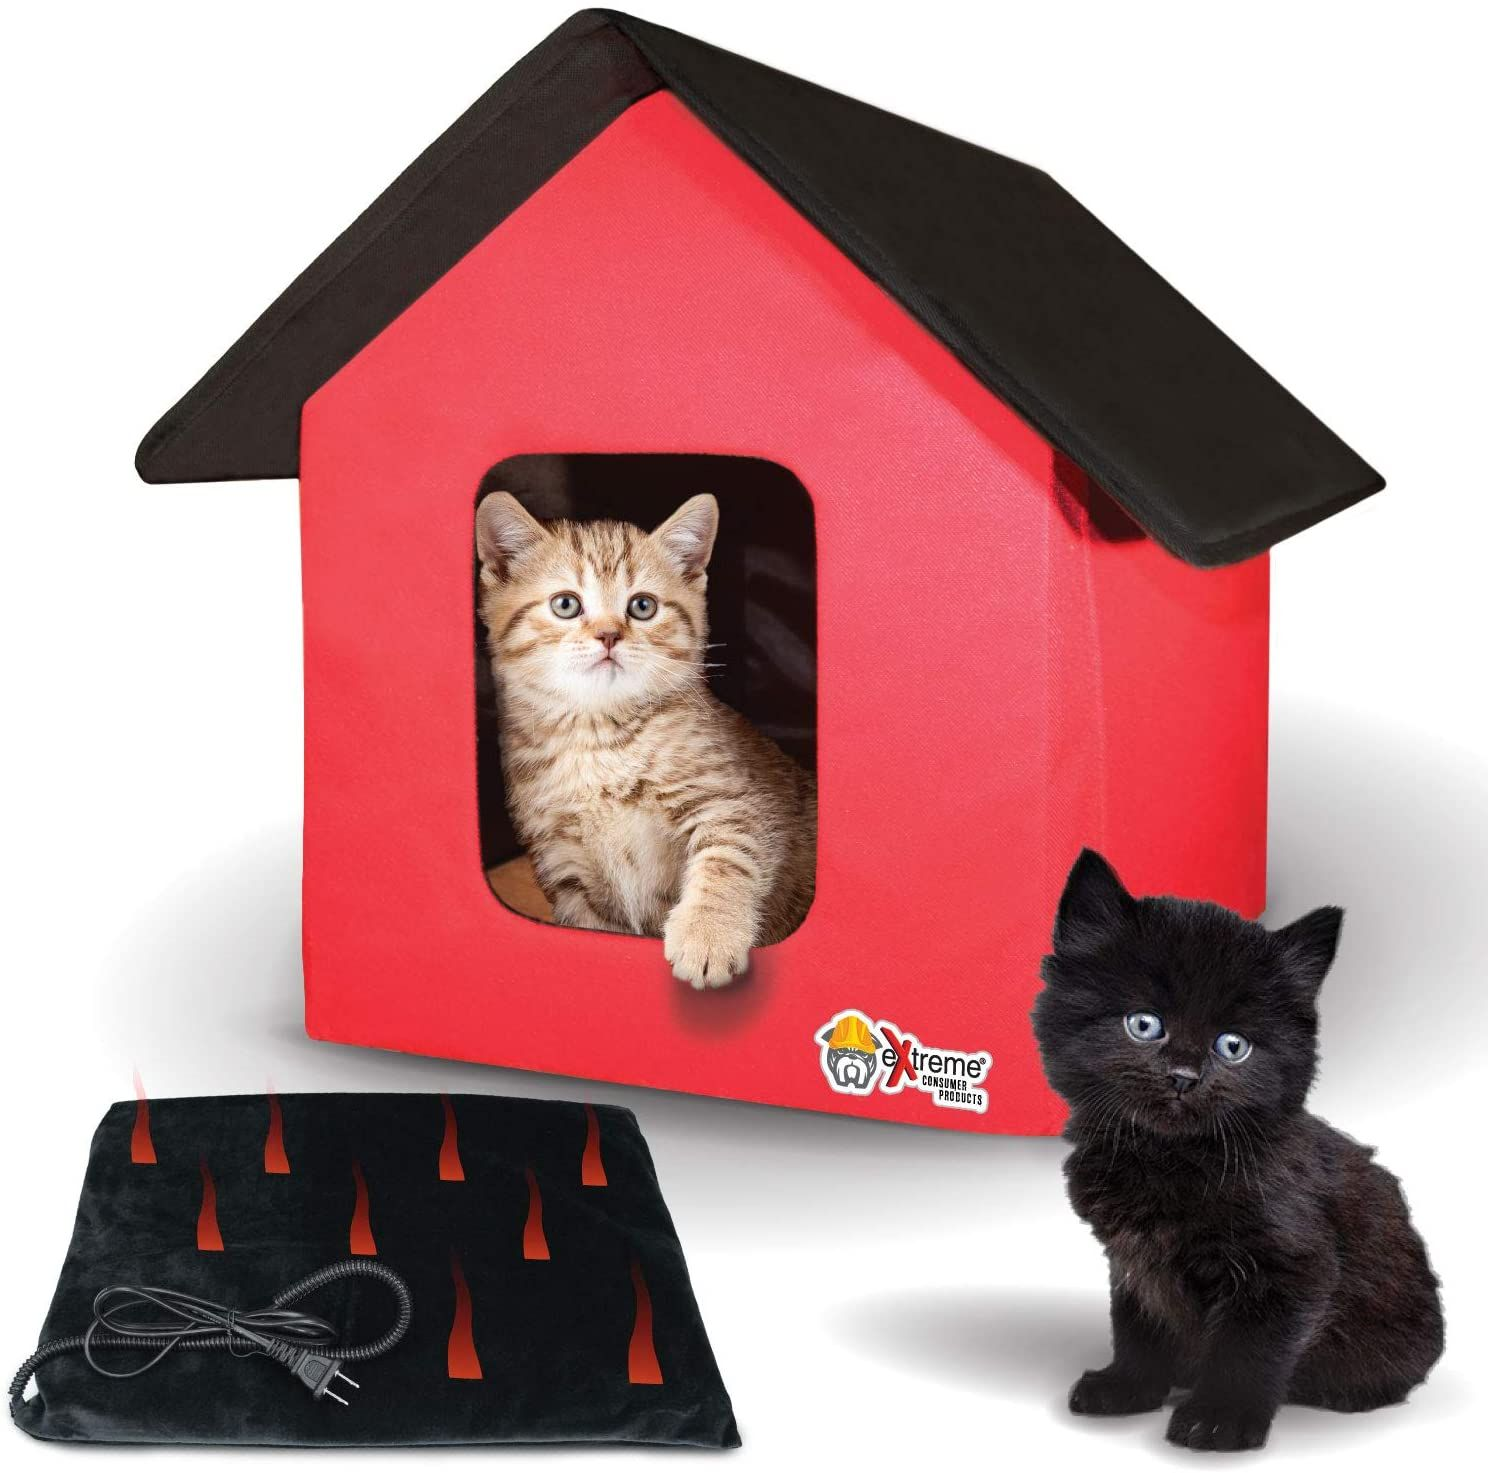 Extreme Consumer Products New 2020 Indoor Outdoor Red Cat House With Heated Cat Bed 2 Doors No Slip Feet And Heated Cat House Cat House Heated Cat Bed